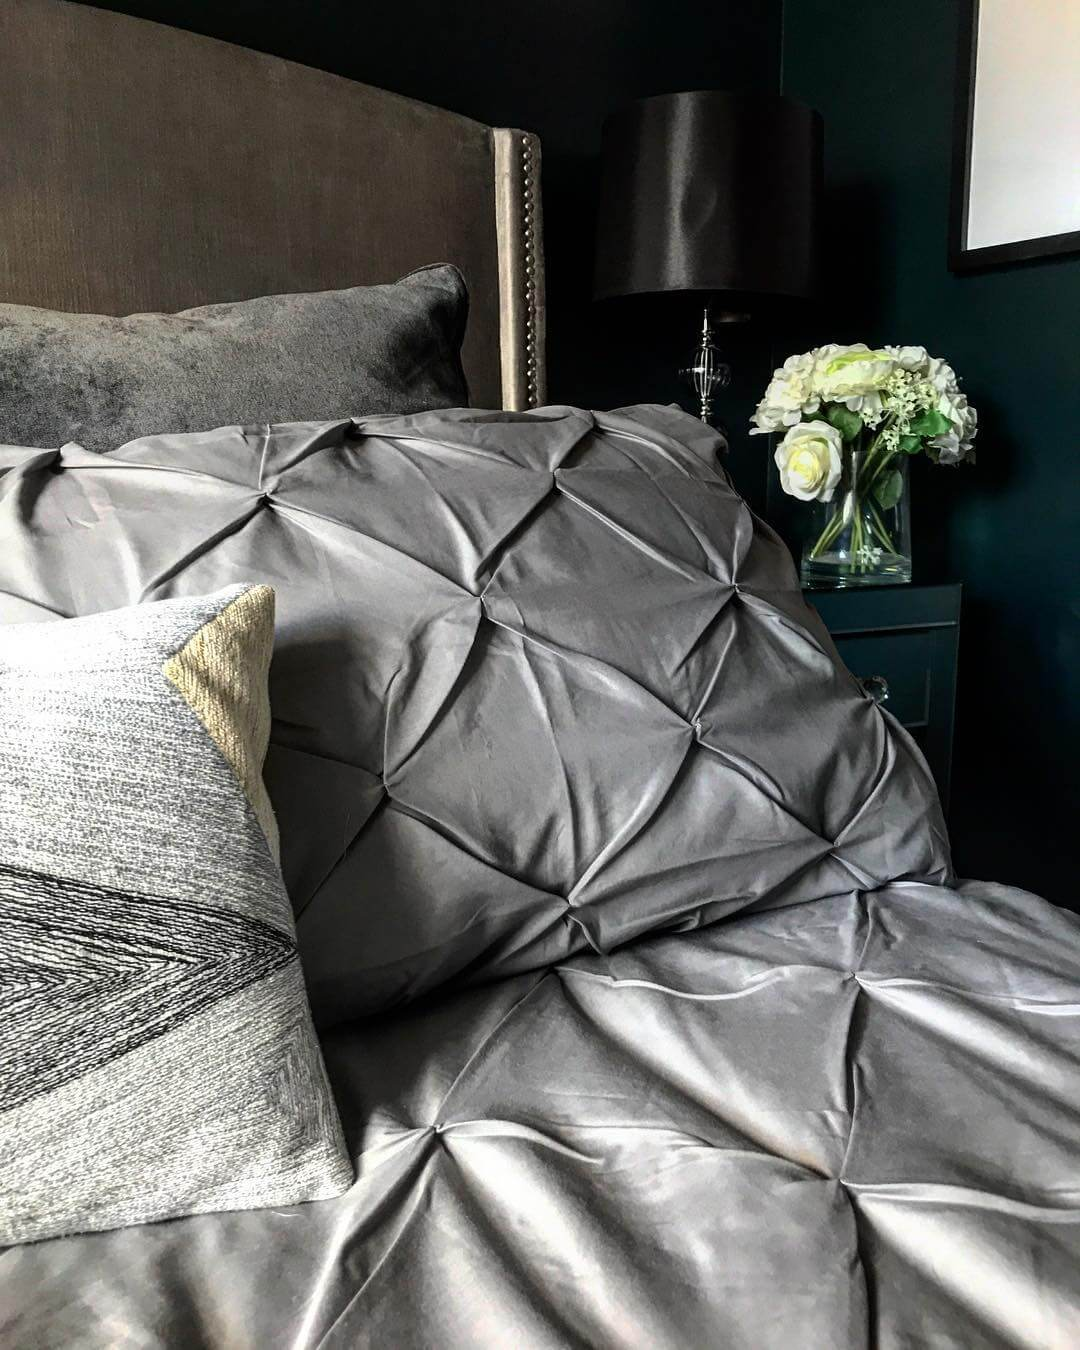 Bed linen: check out this new build home in the UK - it's eclectic, glamorous and welcoming @my_home_impression